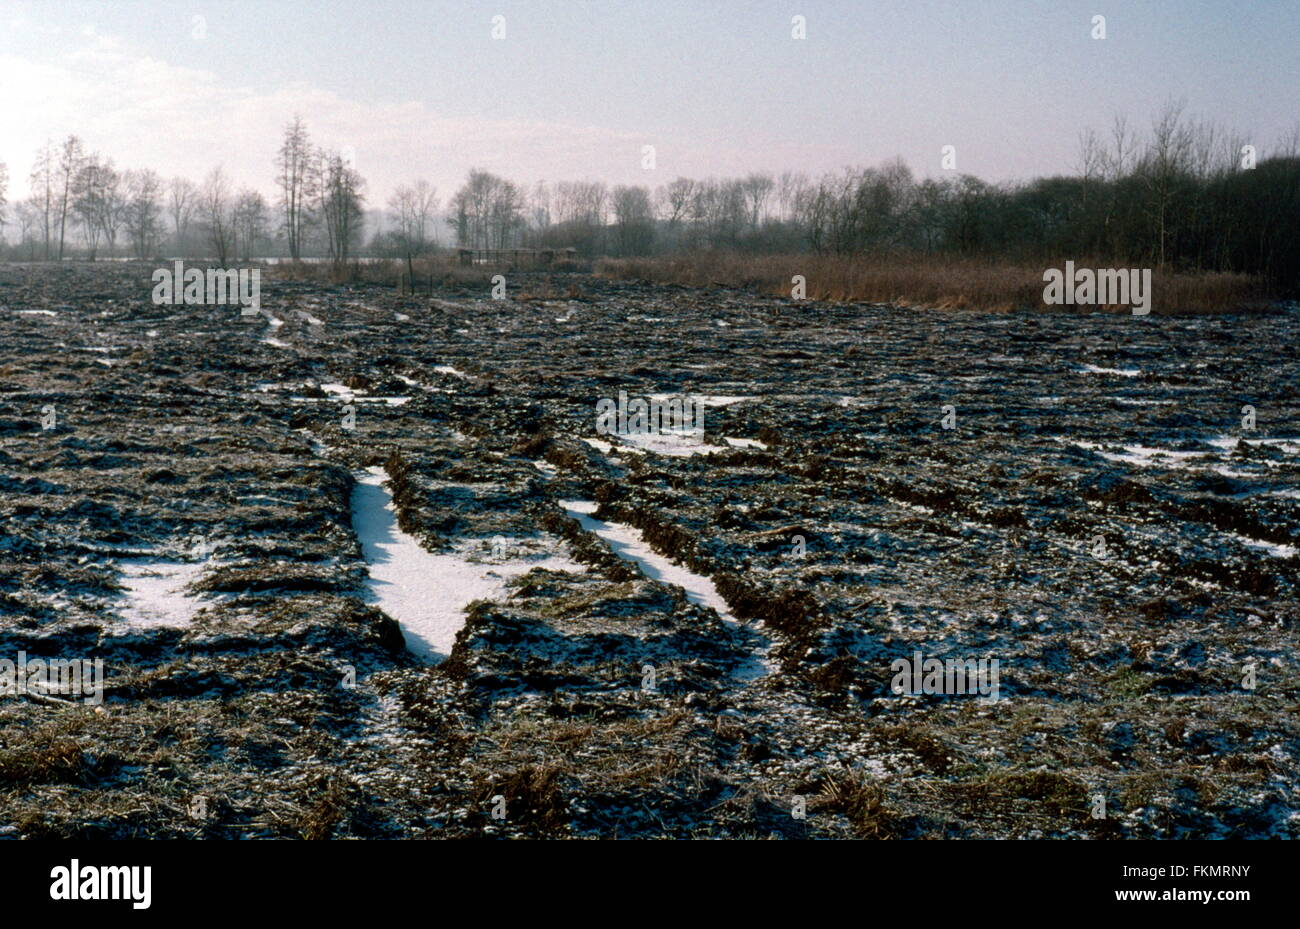 AJAXNETPHOTO. SAILLY LE SEC (NEAR), FRANCE. - SOMME MUD - LANDSCAPE NEAR THE RIVER SOMME, FROZEN PUDDLES AND CHURNED - Stock Image